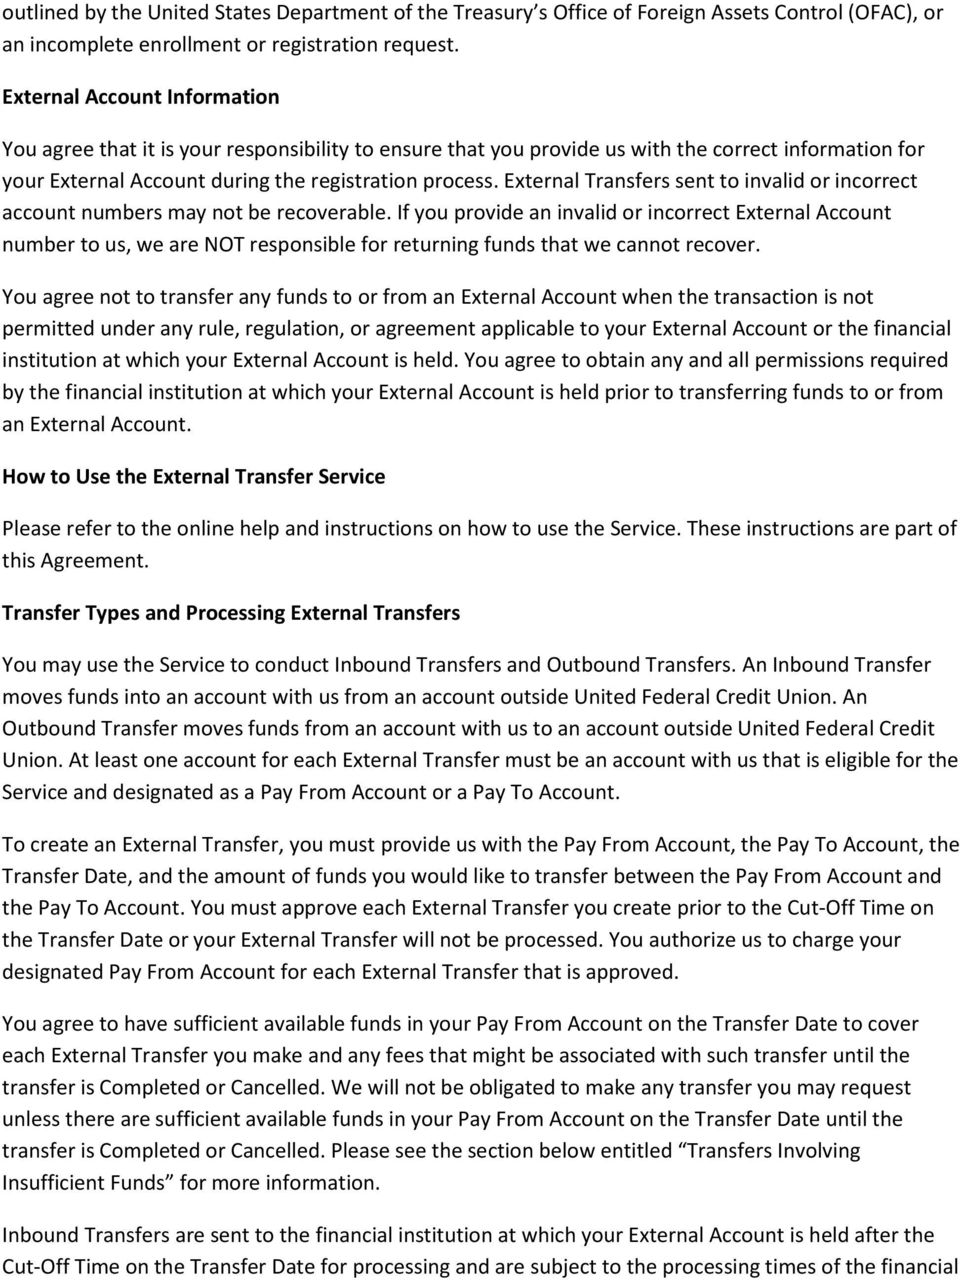 External Transfers sent to invalid or incorrect account numbers may not be recoverable.